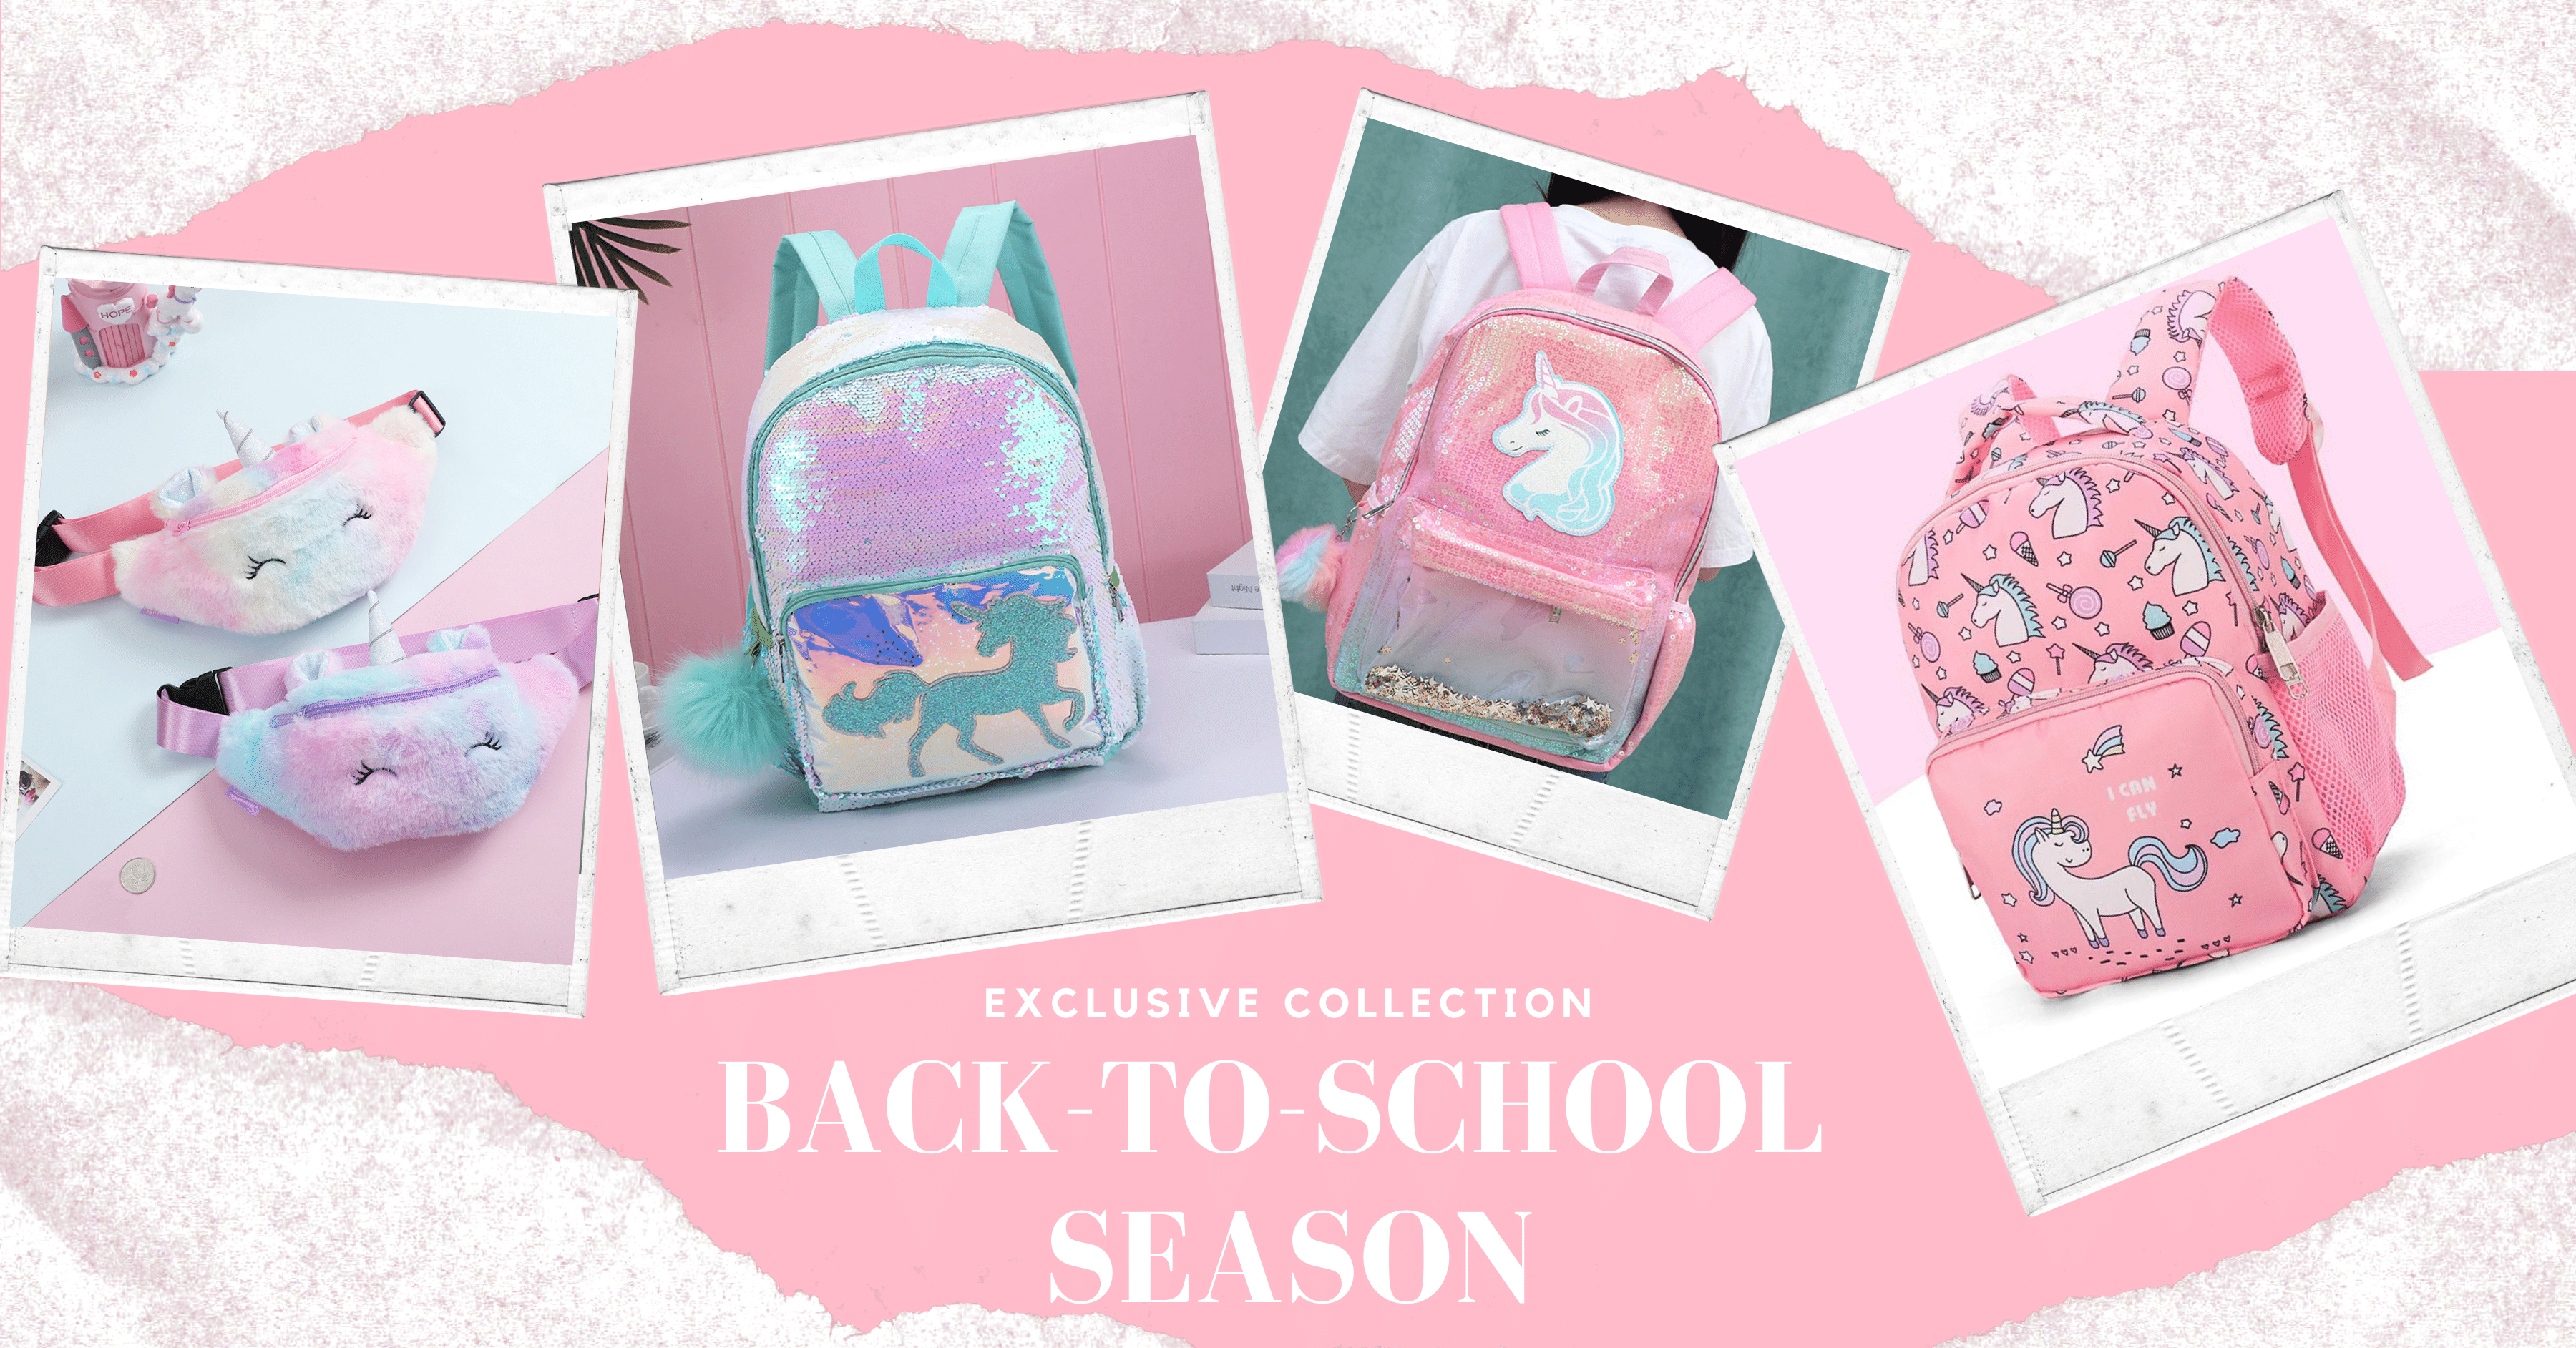 BACK-TO-SCHOOL BACKPACKS WITH THE UNICORN INSPIRATIONAL SPIRIT